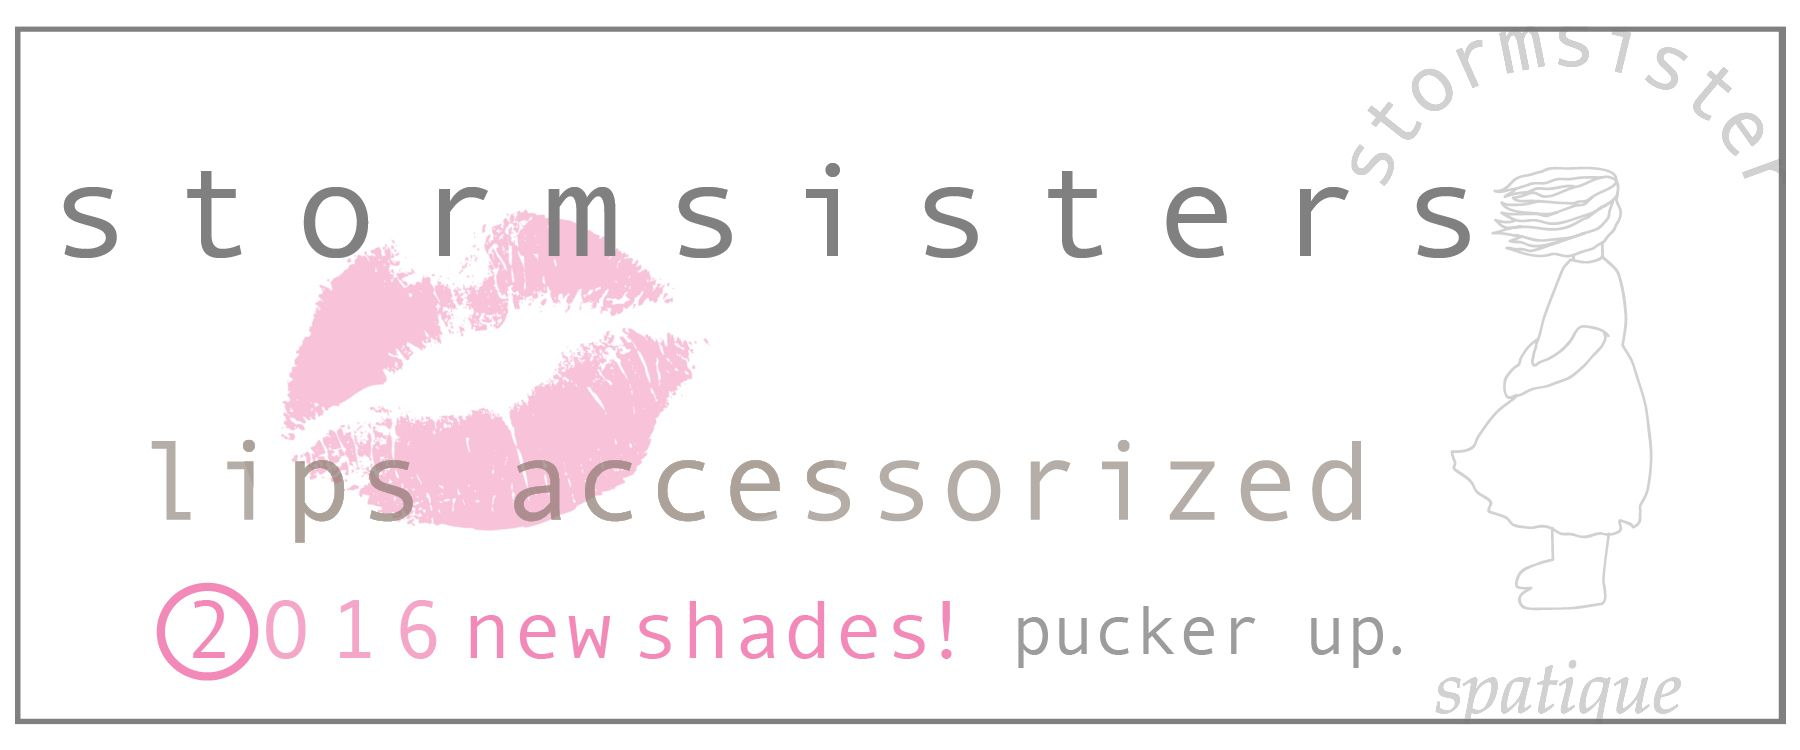 Stormsisters - Lips Accessorized